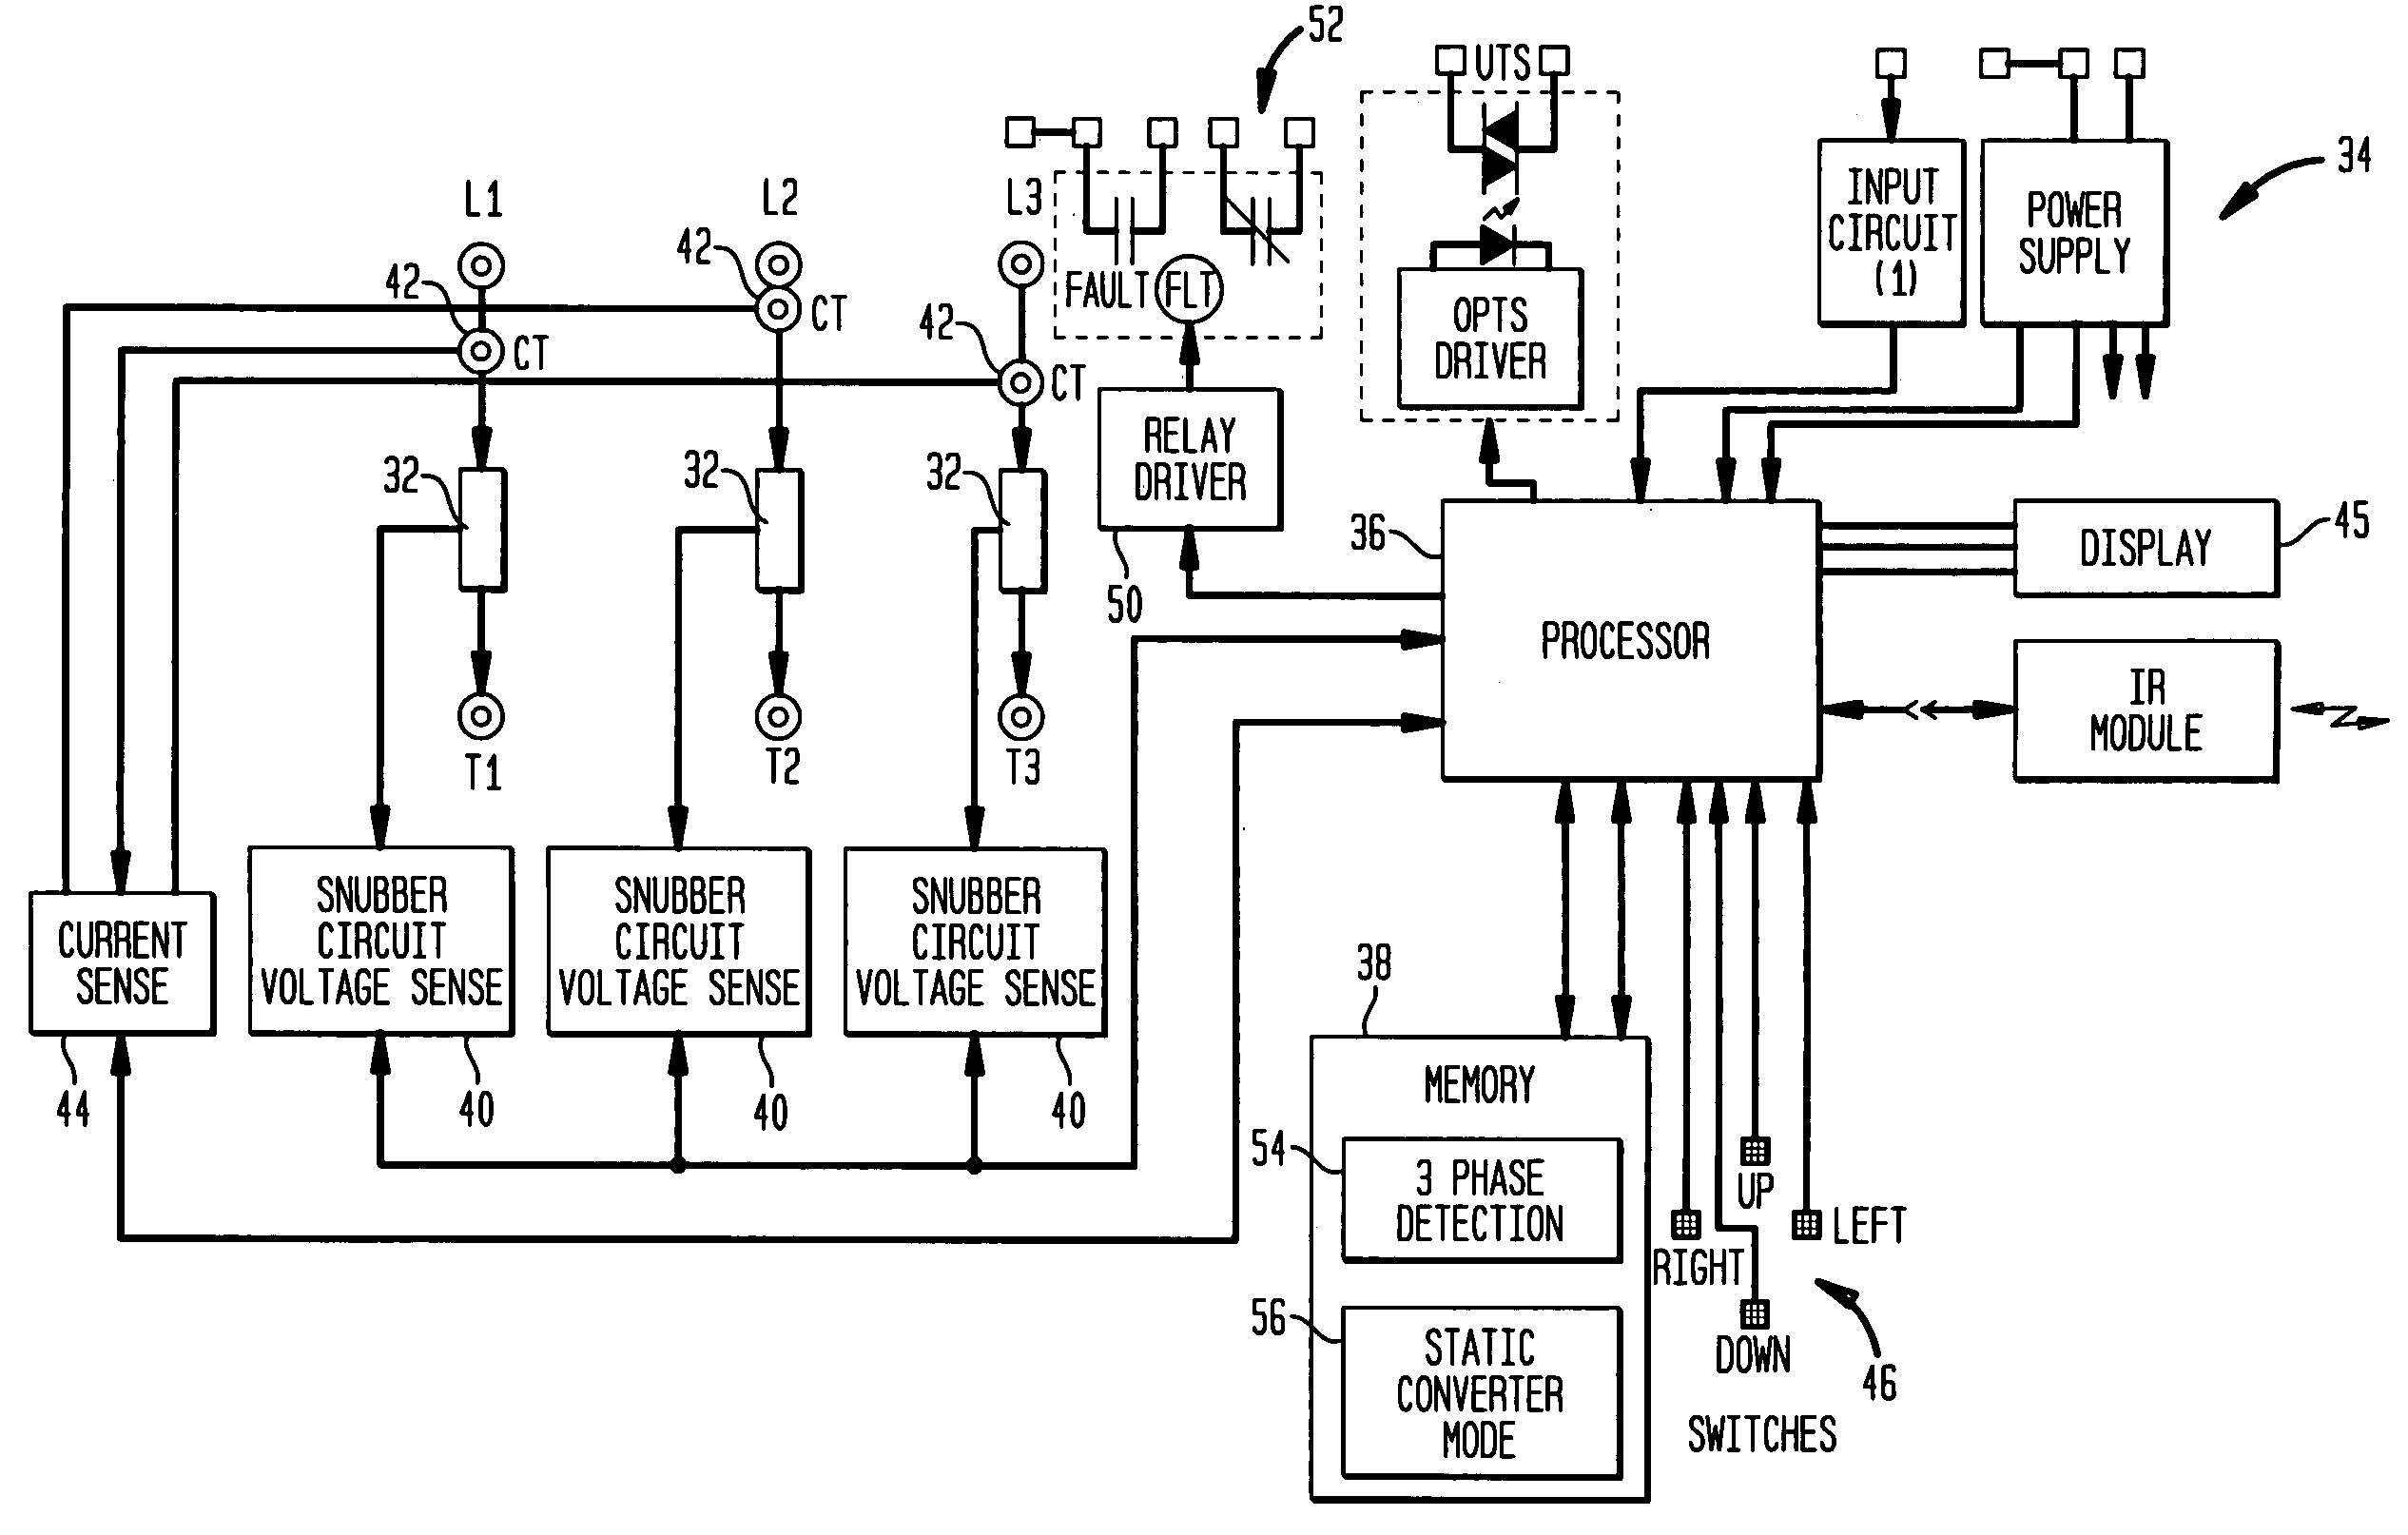 Weg Motor Wiring Diagram 3 Phase - Auto Electrical Wiring ... on porter cable air compressor parts diagram, dol motor starter circuit diagram, weg electric motor nameplates, single-phase motor reversing diagram, baldor motors wiring diagram, weg motor capacitor wiring, teco-westinghouse motors wiring diagram, 12 lead motor winding diagram, us motors wiring diagram, weg drives wiring diagram, electric motors wiring diagram, century motors wiring diagram, weg motors data sheets, weg motors winding diagram, weg wiring layout, a.o. smith motors wiring diagram, weg electric motor drawing, fasco motors wiring diagram, leeson motors wiring diagram, dayton motors wiring diagram,